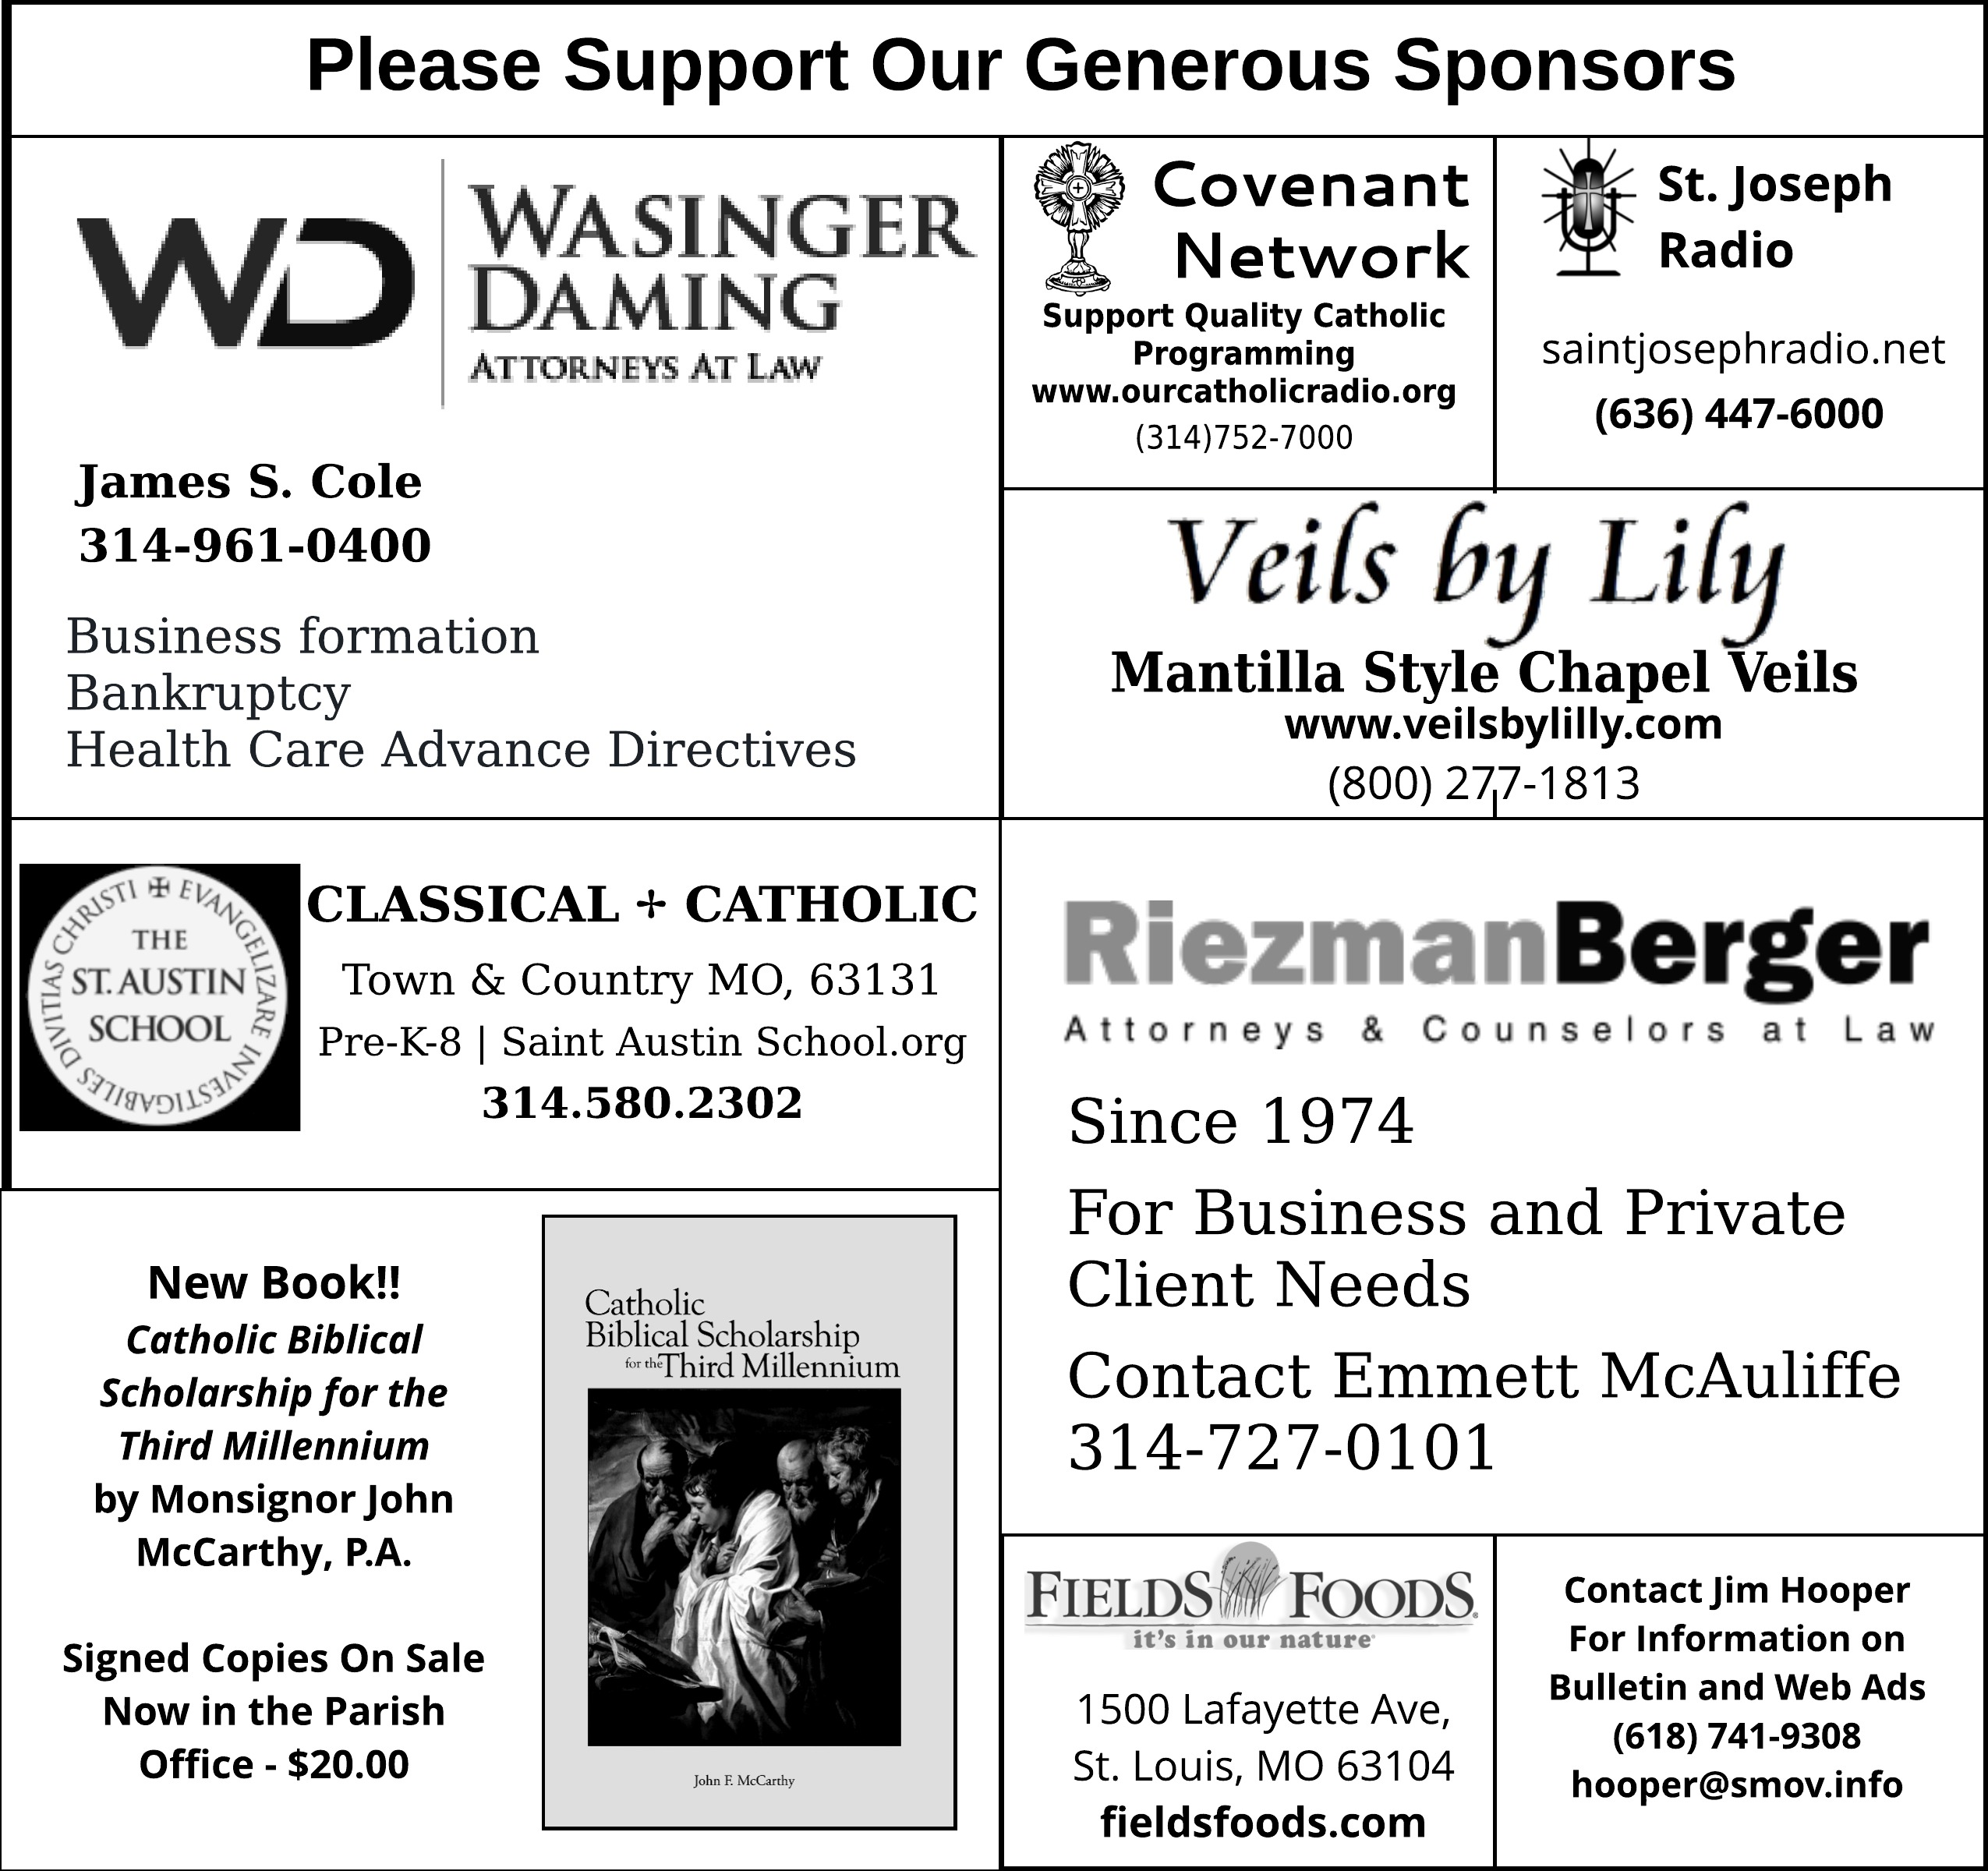 Our Generous Sponsors